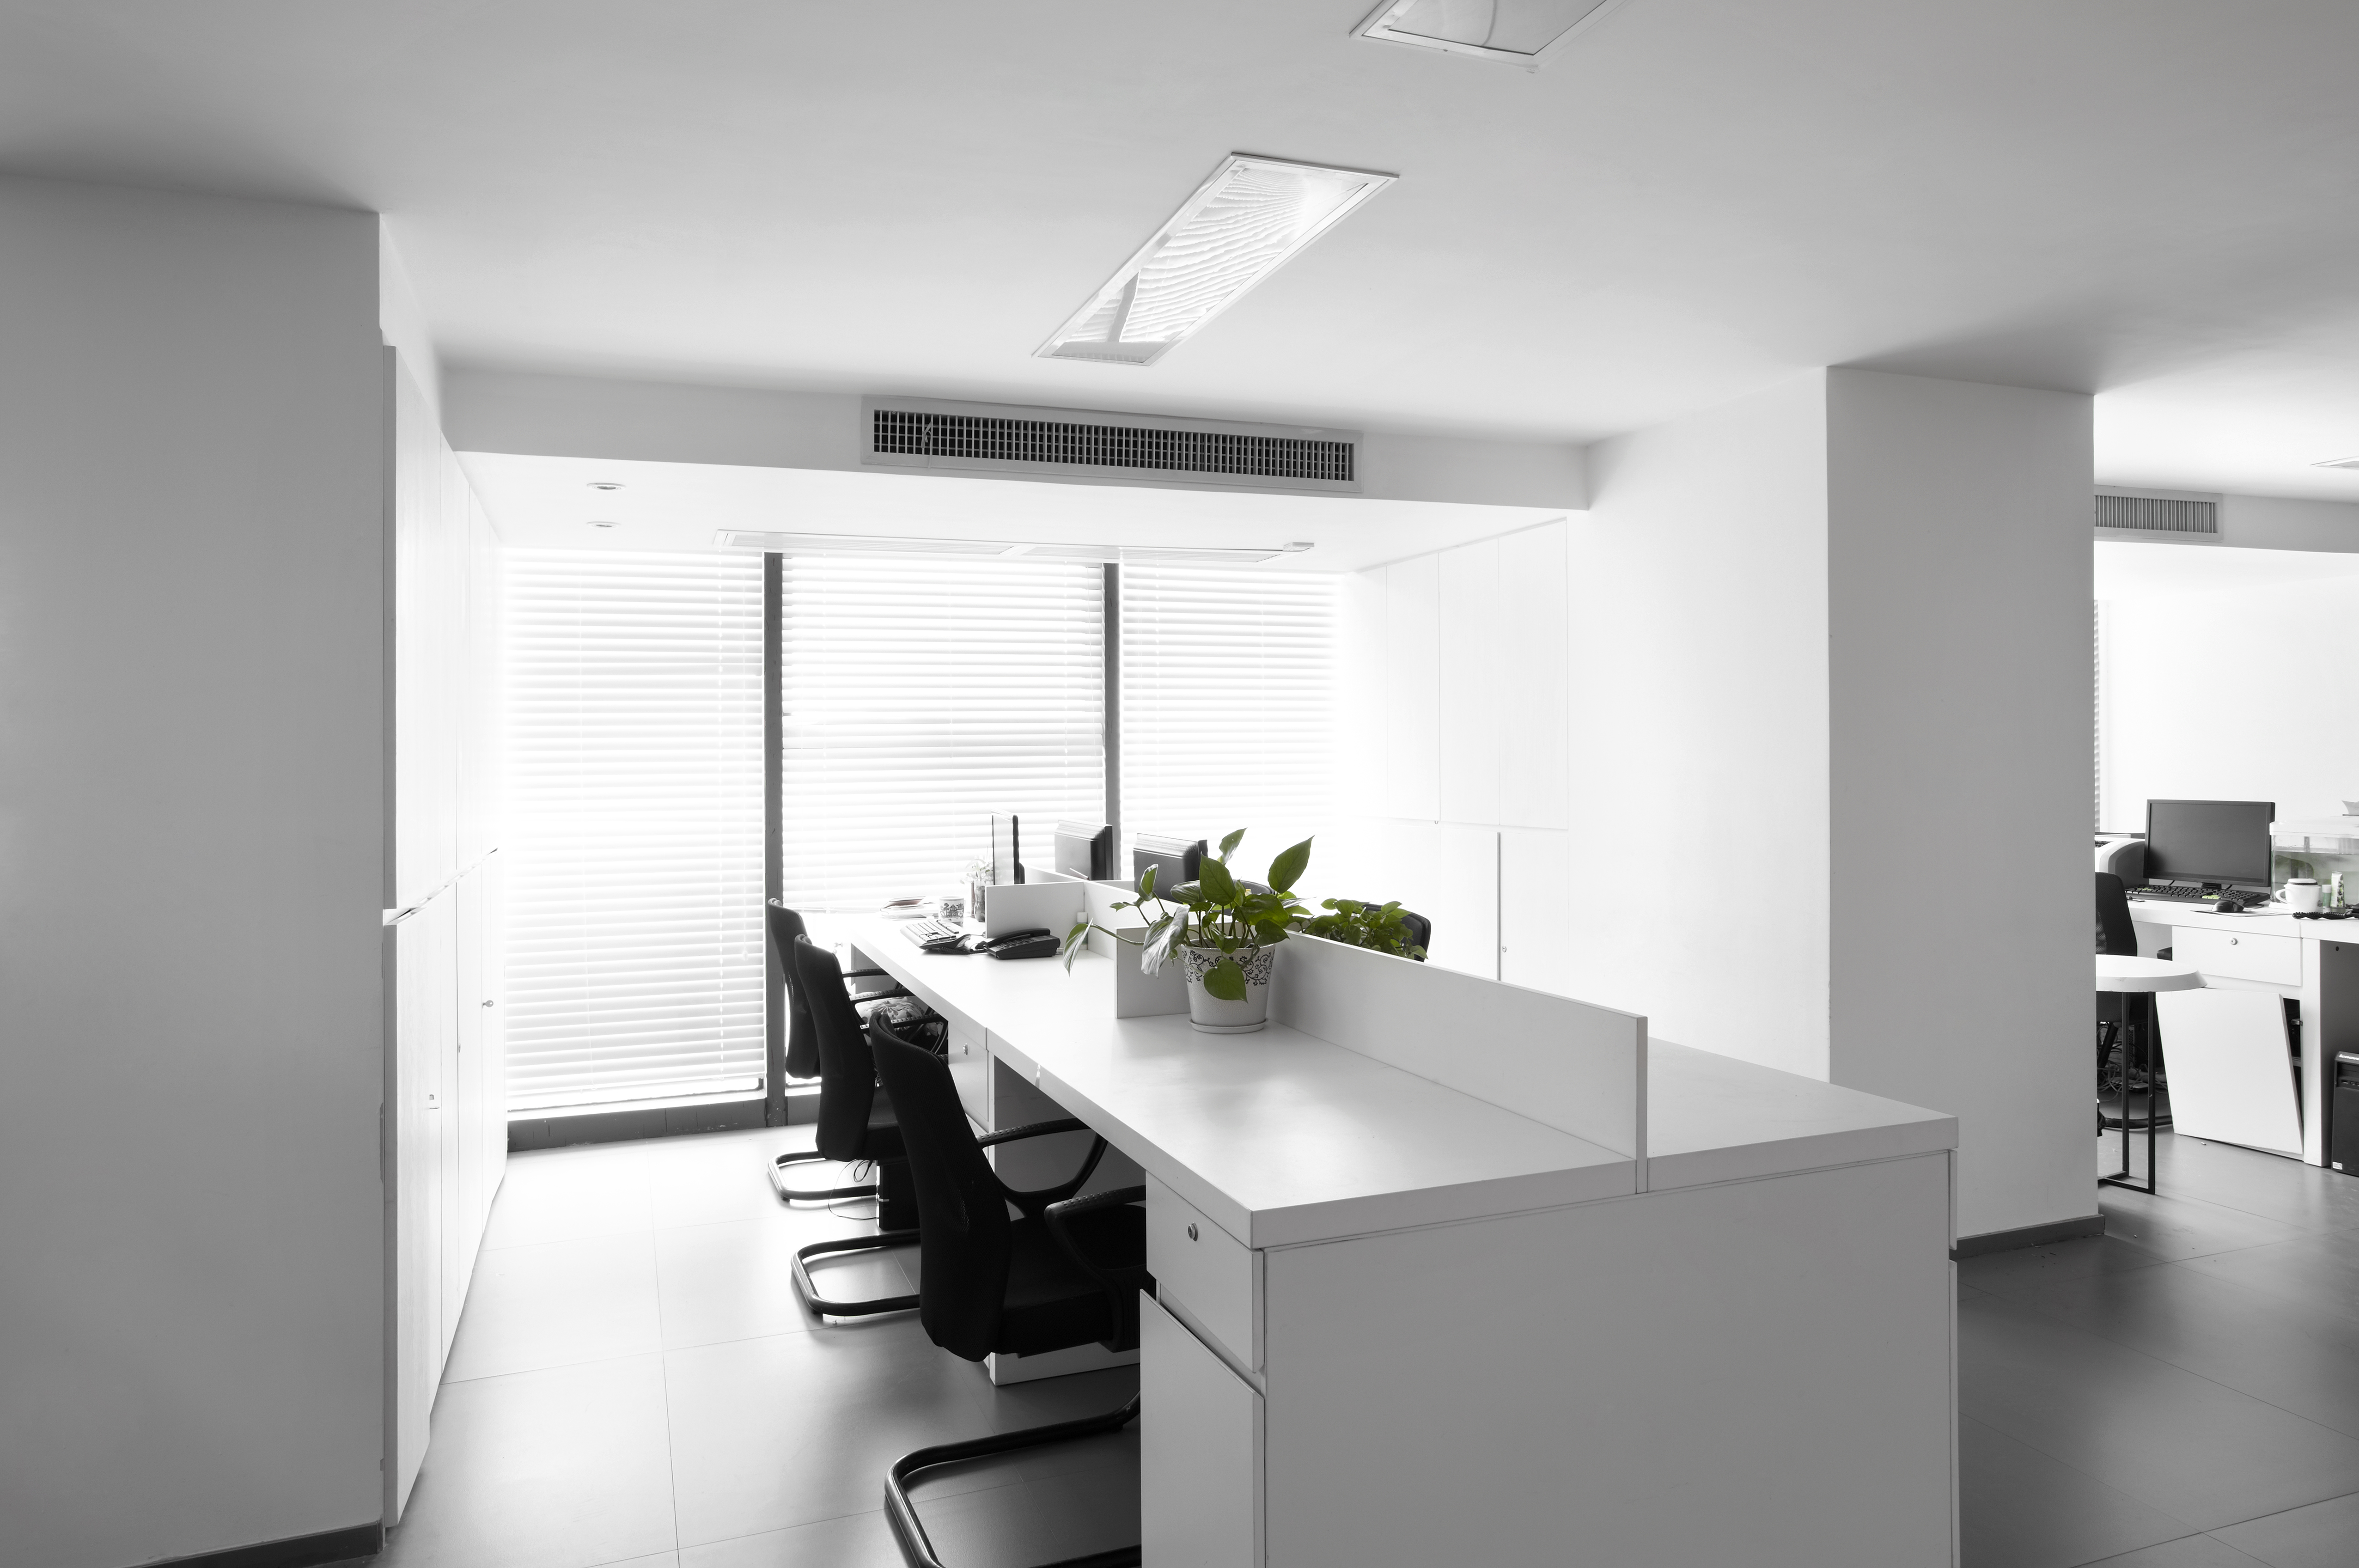 Exceptionnel Buy Quality Used Office Furniture In Charleston South Carolina Call The  Office People 843 769 7774